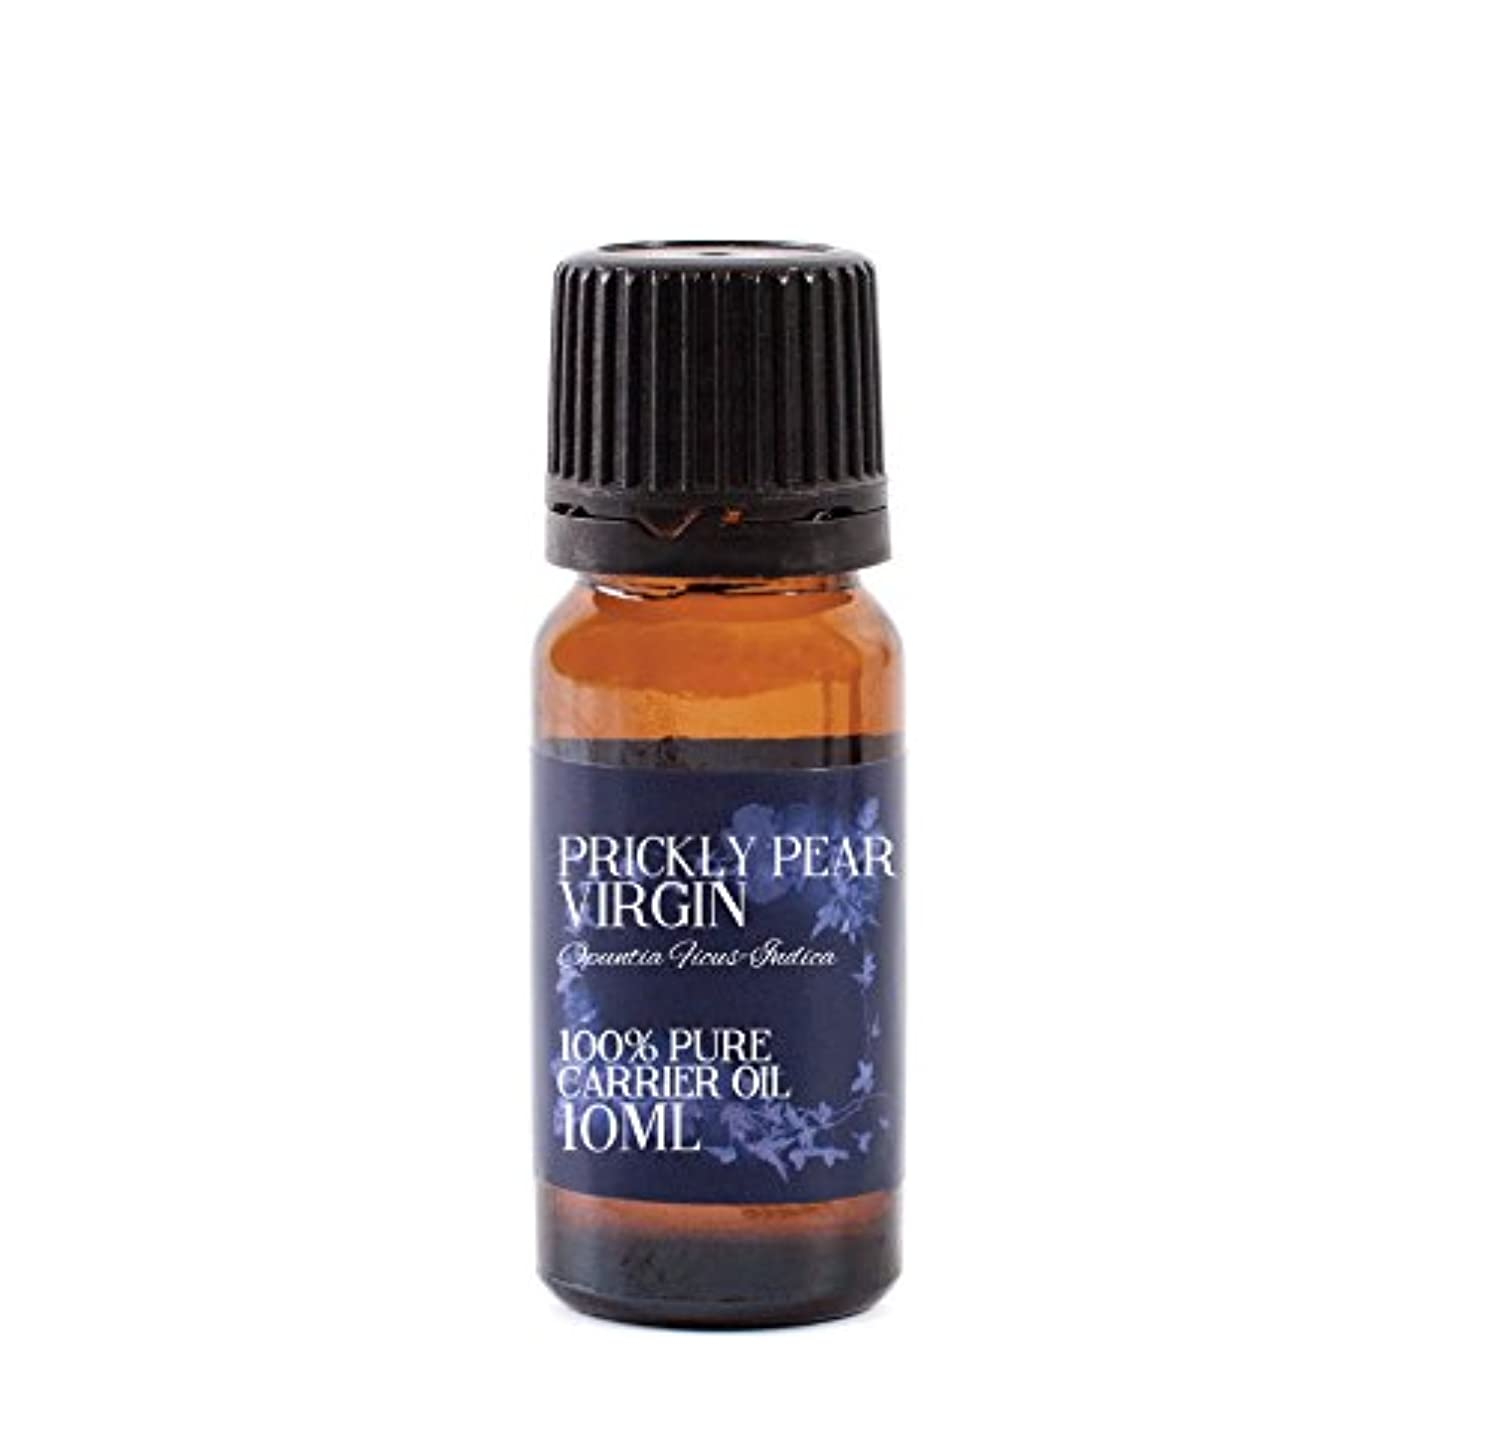 Prickly Pear Virgin Carrier Oil - 100% Pure - 10ml